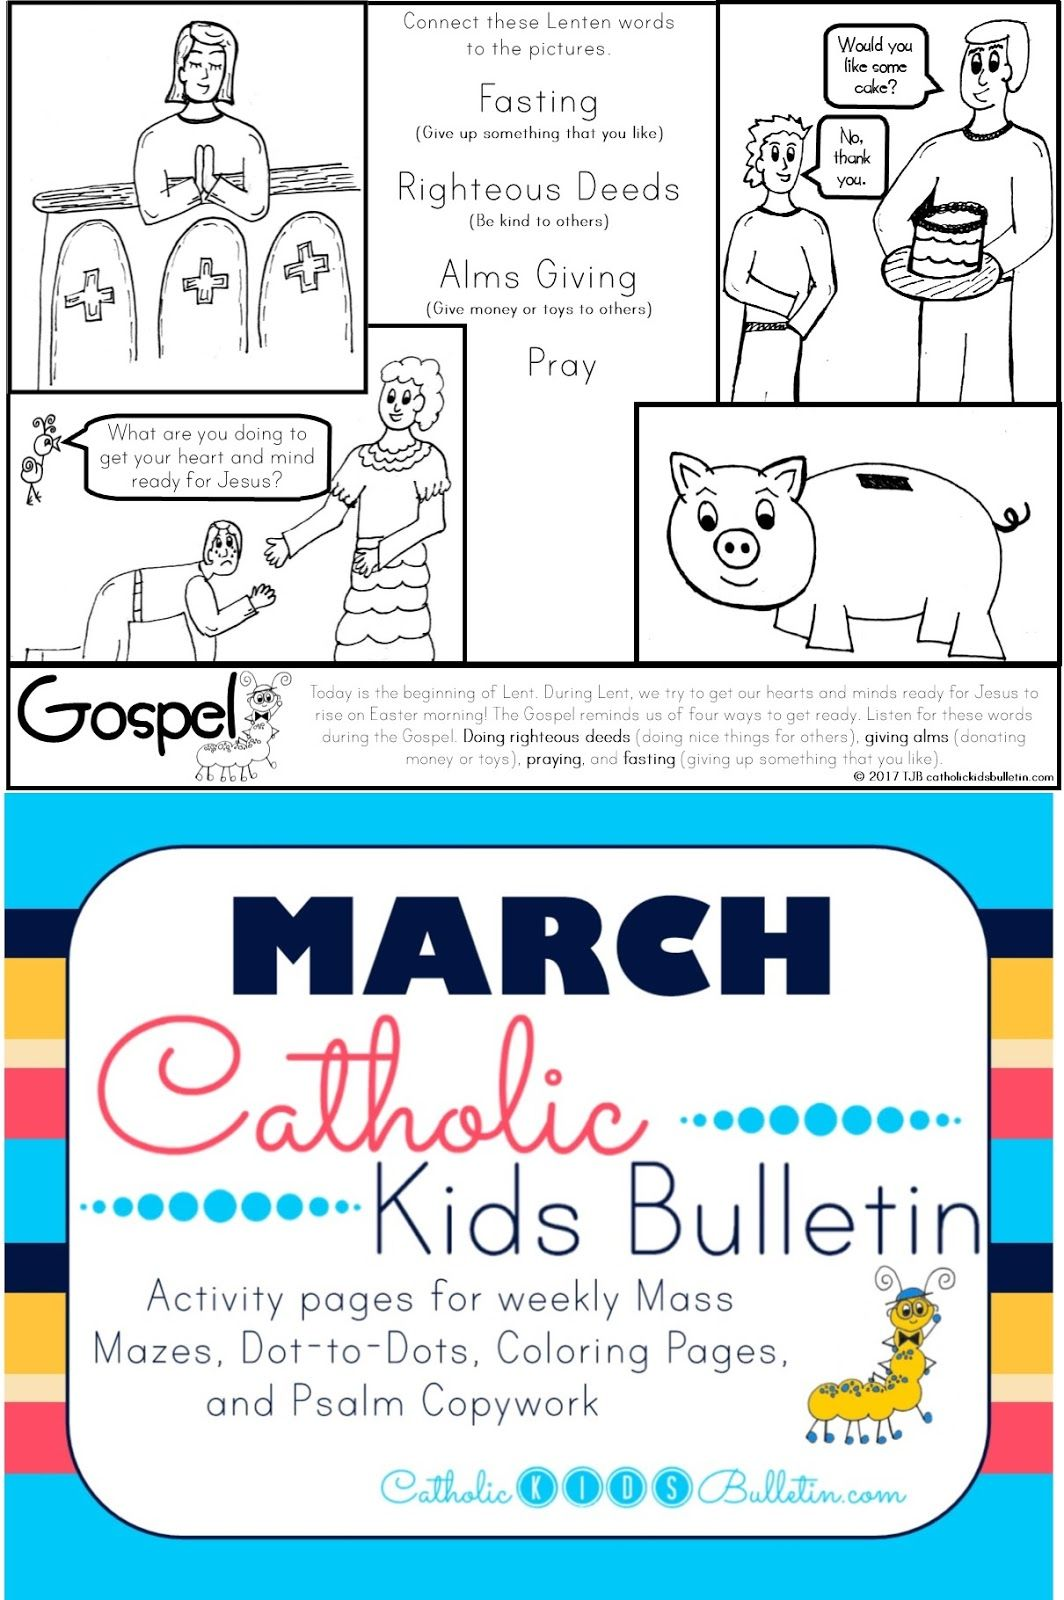 March Catholic Kids Bulletin